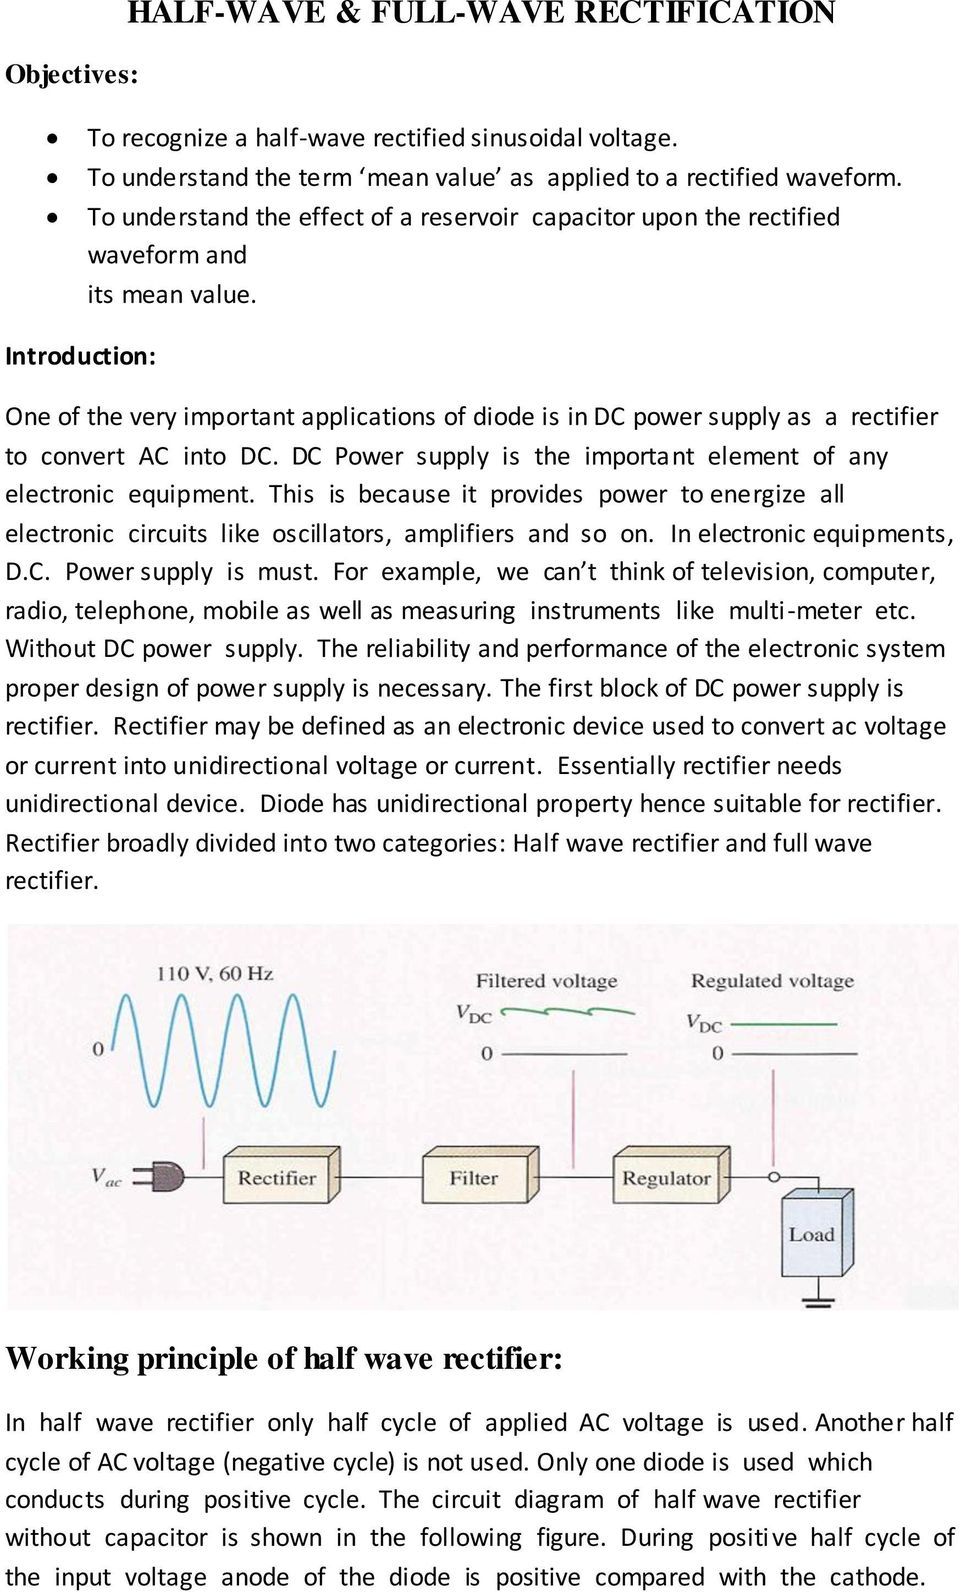 Half Wave Full Rectification Pdf Capacitor Filter Used In Rectifier Circuit As Shown The Introduction One Of Very Imortant Alications Diode Is Dc Ower Suly